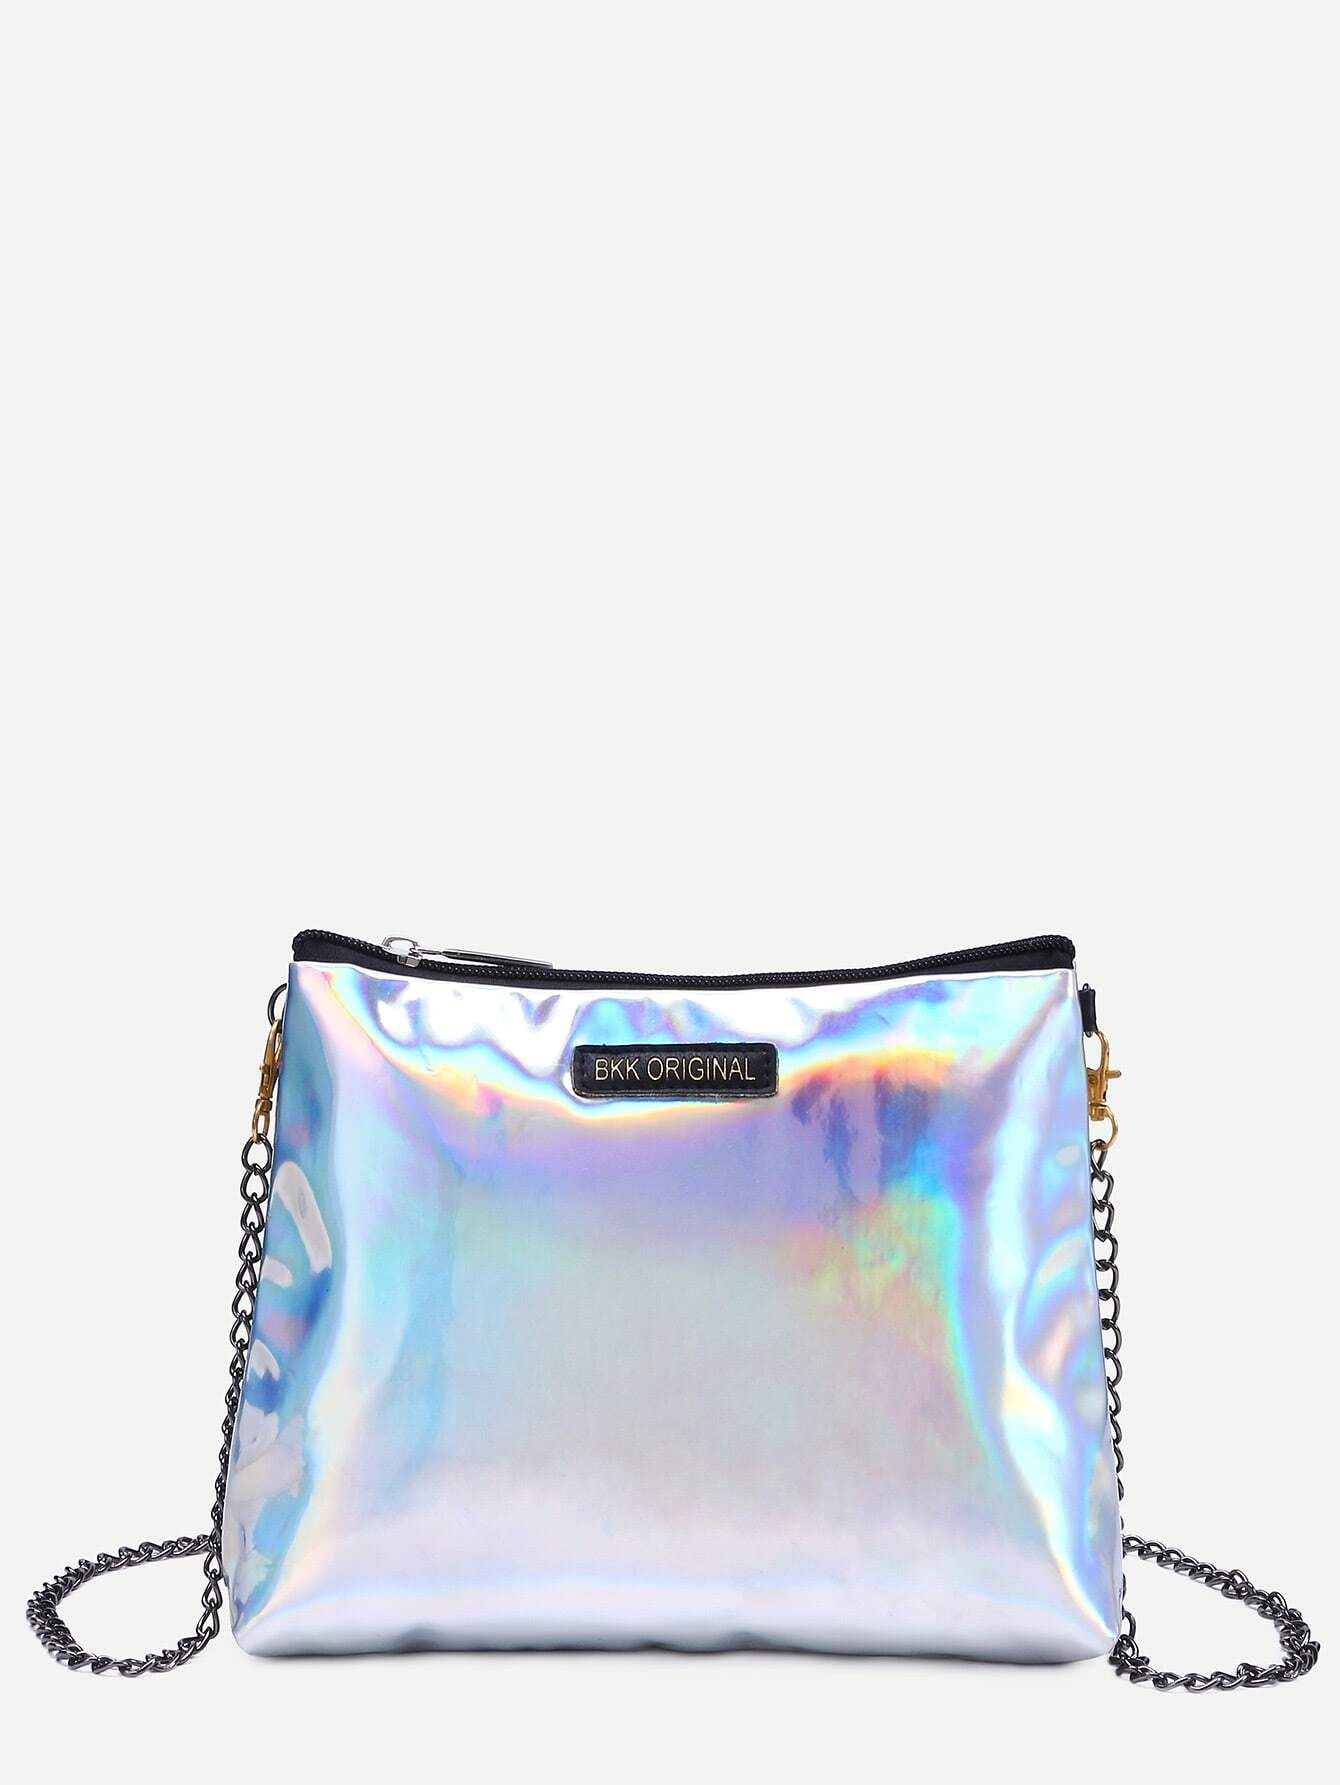 Zip Closure Iridescent Bag With Chain Strap new bag strap chain wallet handle purse acrylic resin strap chain strap replaced bag strap bag spare parts